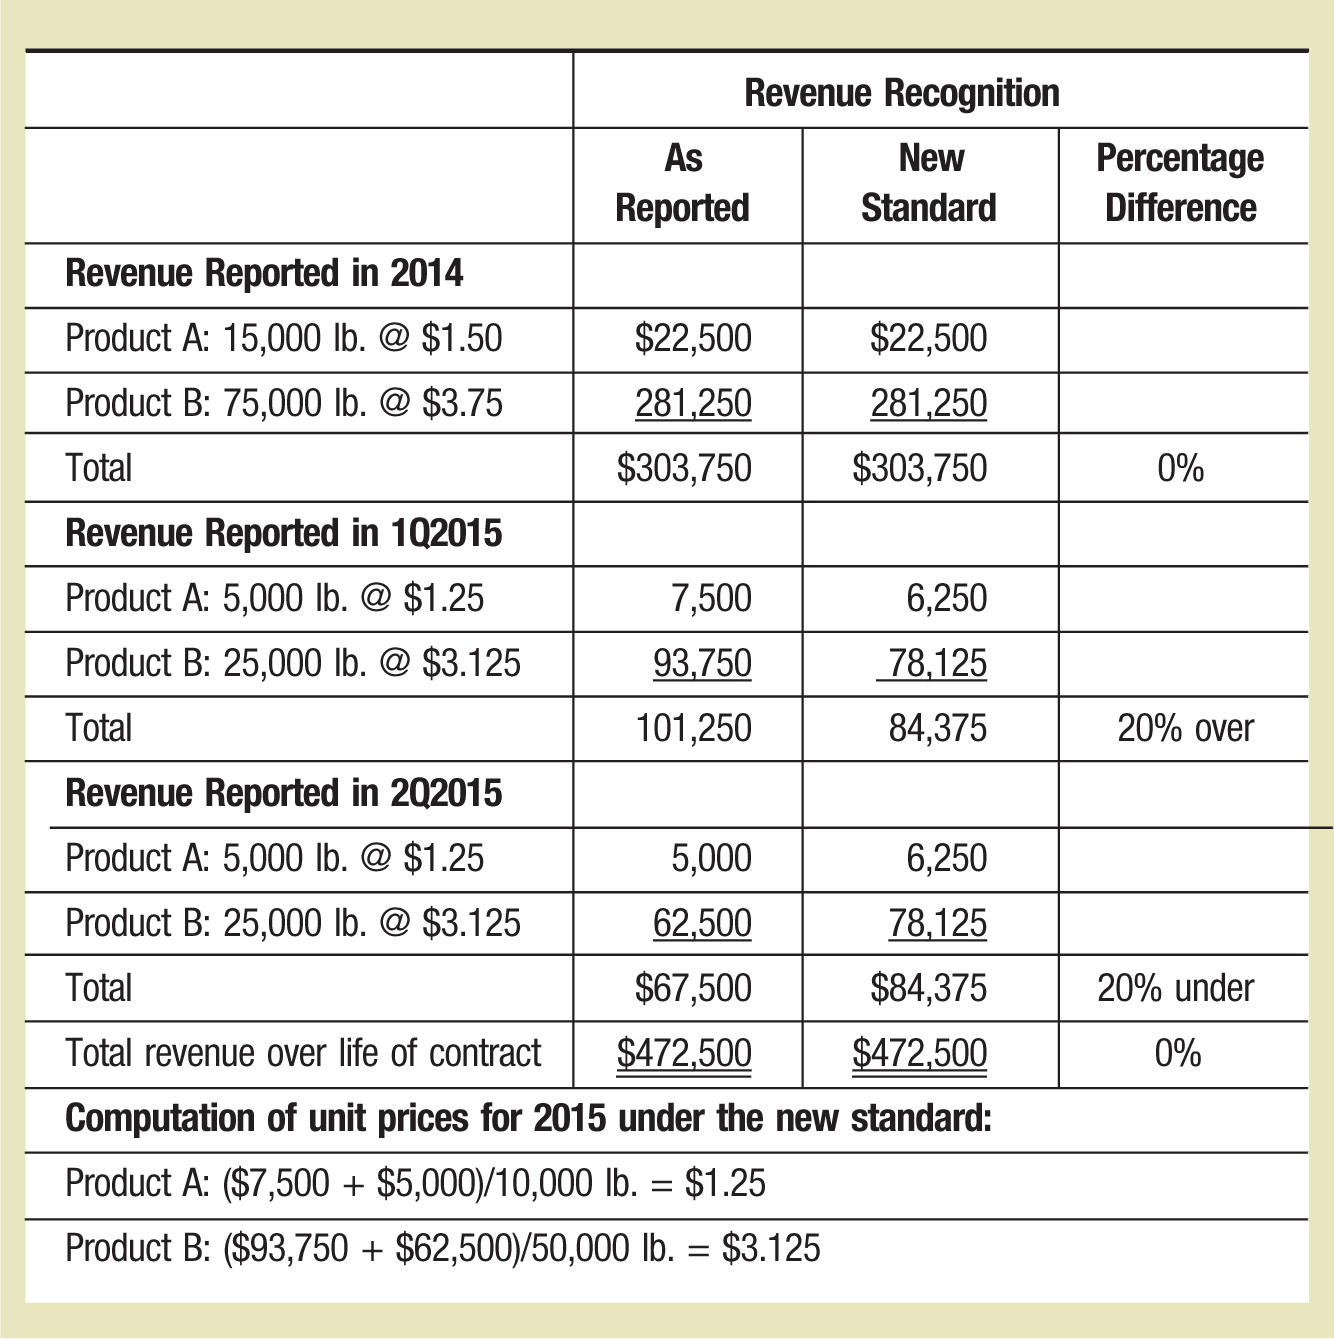 Revenue Recognition As Reported New Standard Percentage Difference Revenue Reported in 2014 Product A: 15,000 lb. @ $1.50 $22,500 $22,500 Product B: 75,000 lb. @ $3.75 281,250 281,250 Total $303,750 $303,750 0% Revenue Reported in 1Q2015 Product A: 5,000 lb. @ $1.25 7,500 6,250 Product B: 25,000 lb. @ $3.125 93,750 78,125 Total 101,250 84,375 20% over Revenue Reported in 2Q2015 Product A: 5,000 lb. @ $1.25 5,000 6,250 Product B: 25,000 lb. @ $3.125 62,500 78,125 Total $67,500 $84,375 20% under Total revenue over life of contract $472,500 $472,500 0% Computation of unit prices for 2015 under the new standard: Product A: ($7,500 + $5,000)/10,000 lb. = $1.25 Product B: ($93,750 + $62,500)/50,000 lb. = $3.125